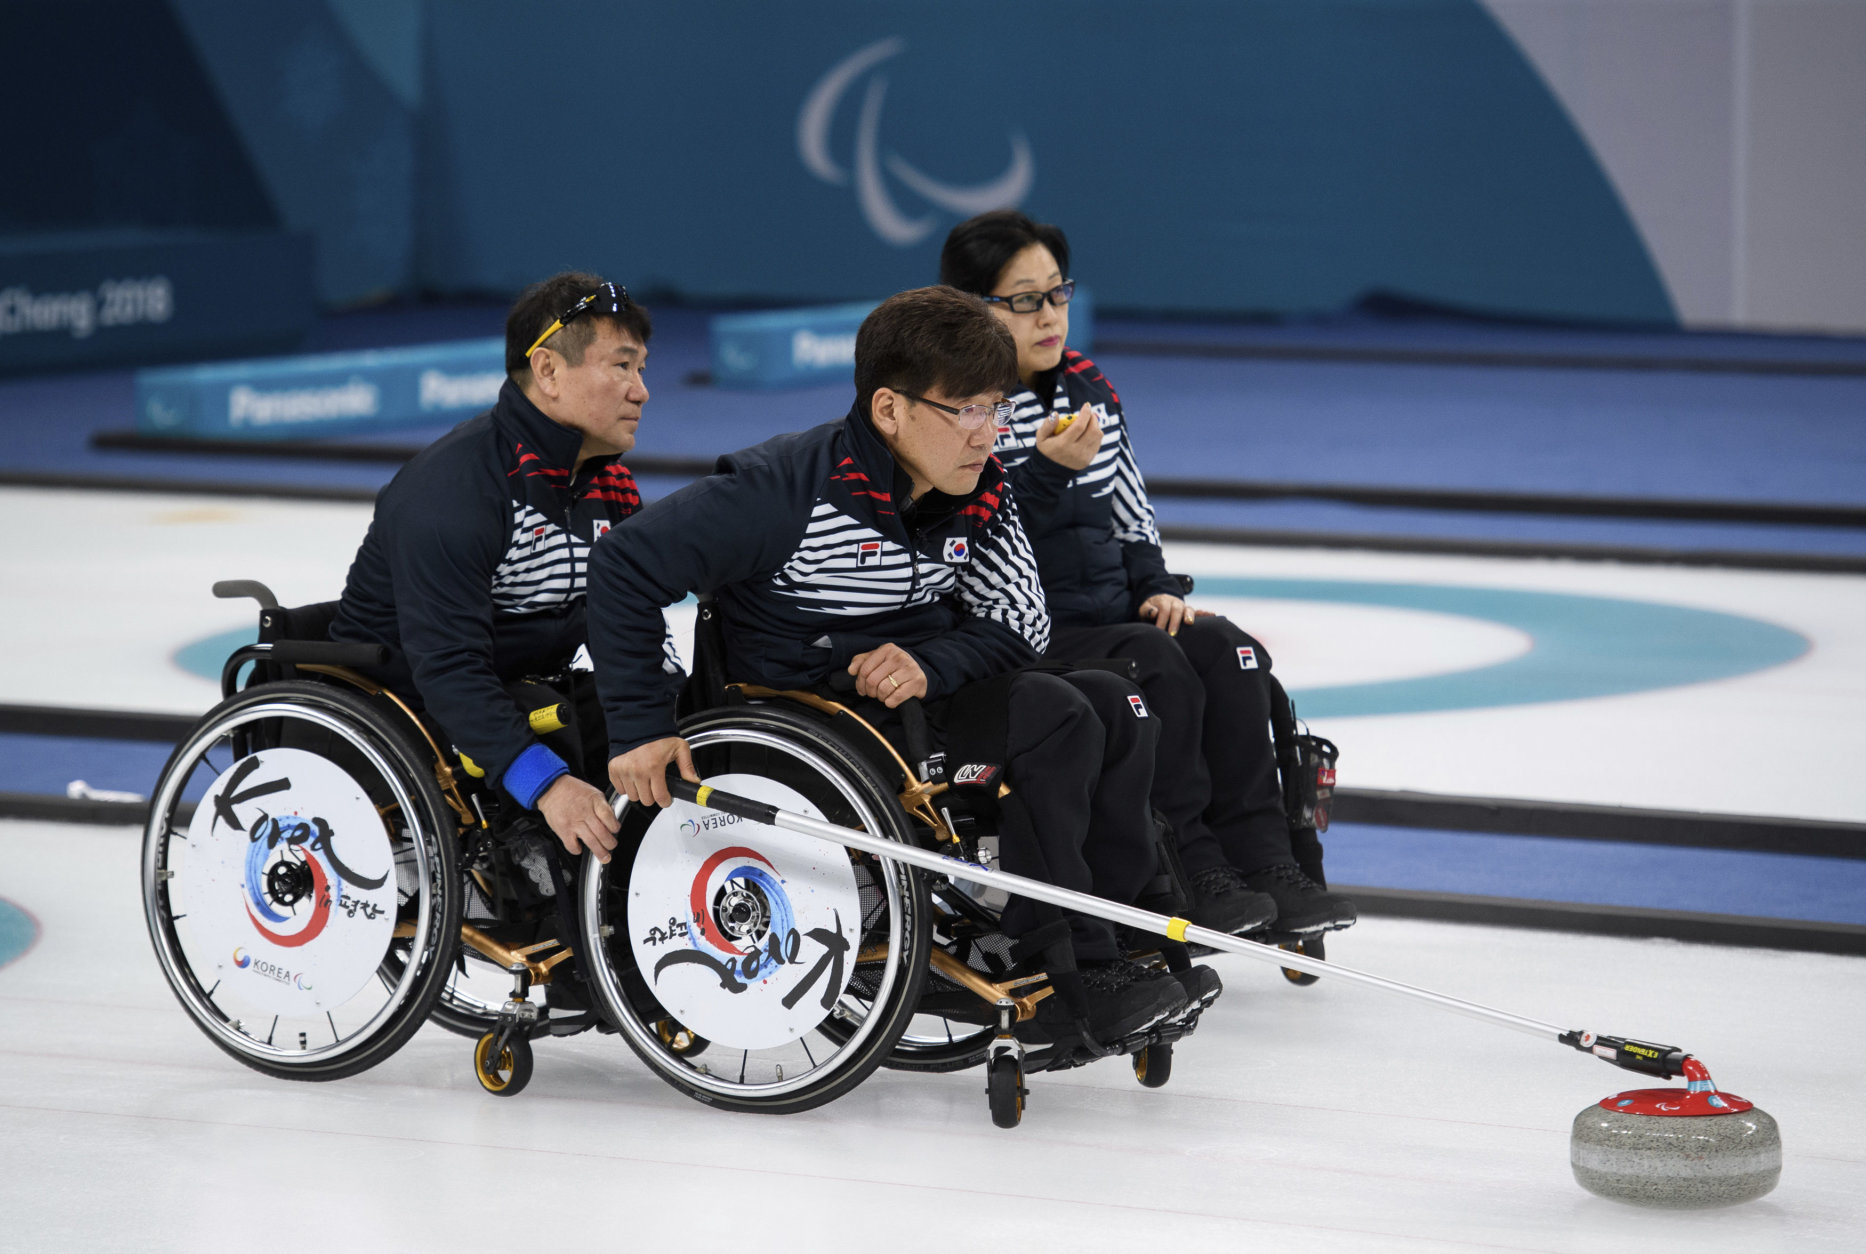 Soonseok Seo, center, of South Korea throws a stone during the Wheelchair Curling Bronze Medal Game between South Korea and Canada at the Gangneung Curling Centre  in Gangneung, South Korea at the 2018 Winter Paralympics Saturday, March 17, 2018. (Joel Marklund/OIS/IOC via AP)